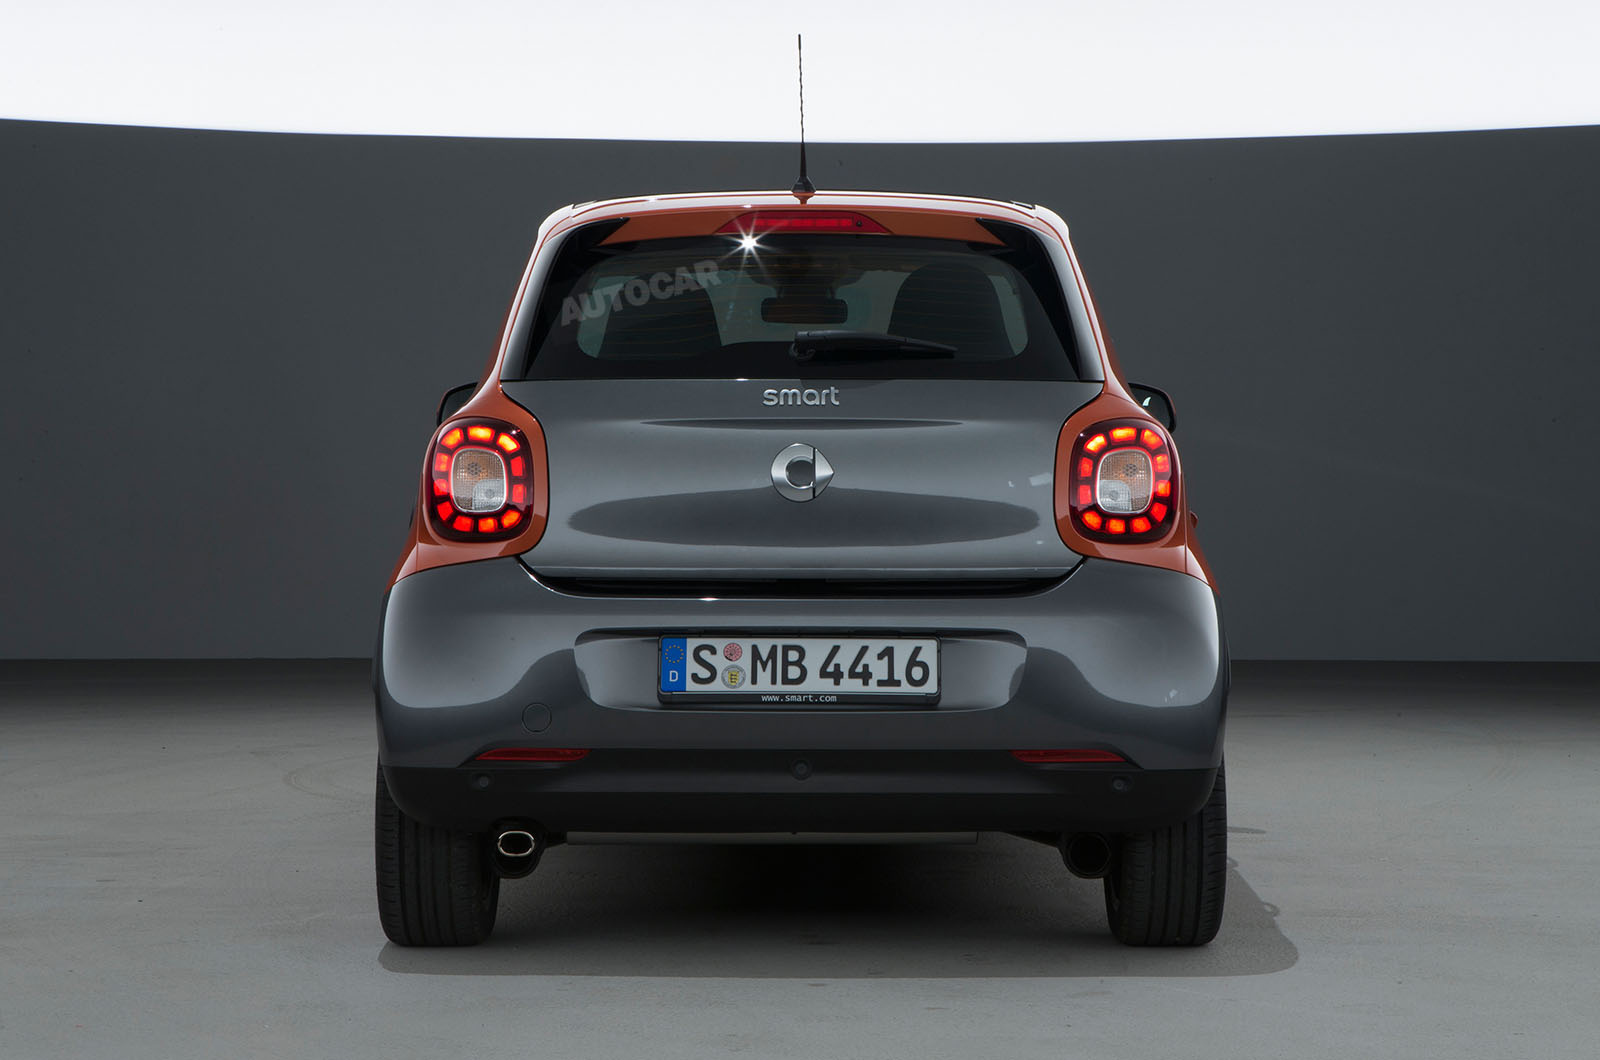 2014 - [Smart] Forfour [W453] - Page 12 Smart-fortwo-forfour-z-t84o26